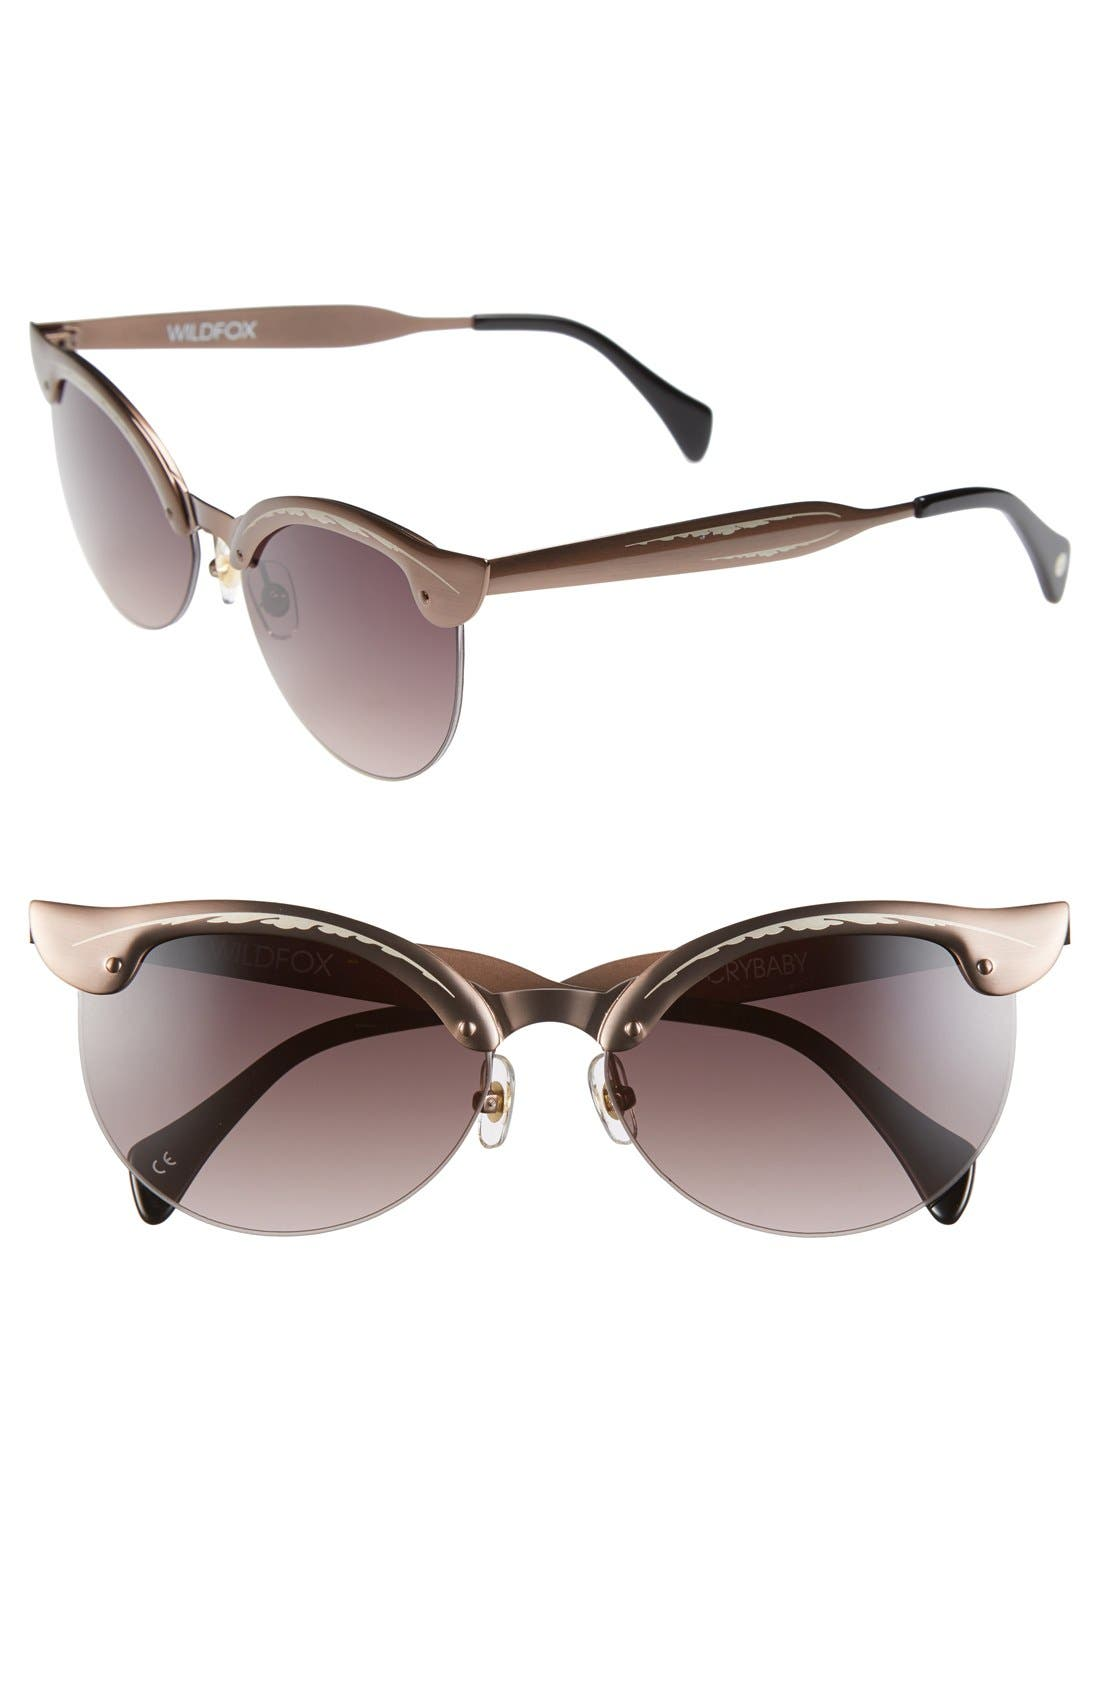 Main Image - Wildfox 'Crybaby' 57mm Sunglasses